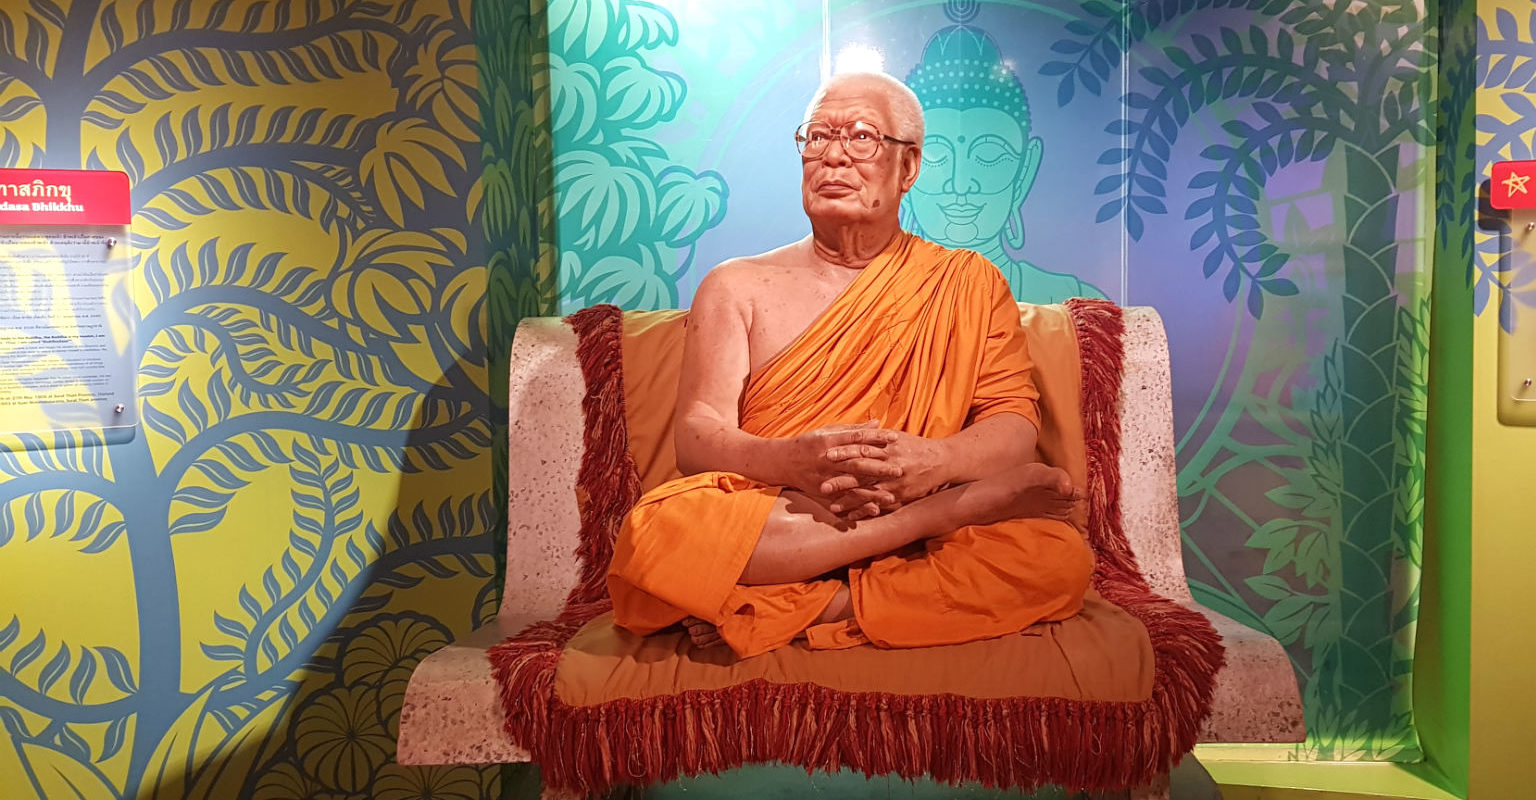 Boeddha in Madame Tussauds